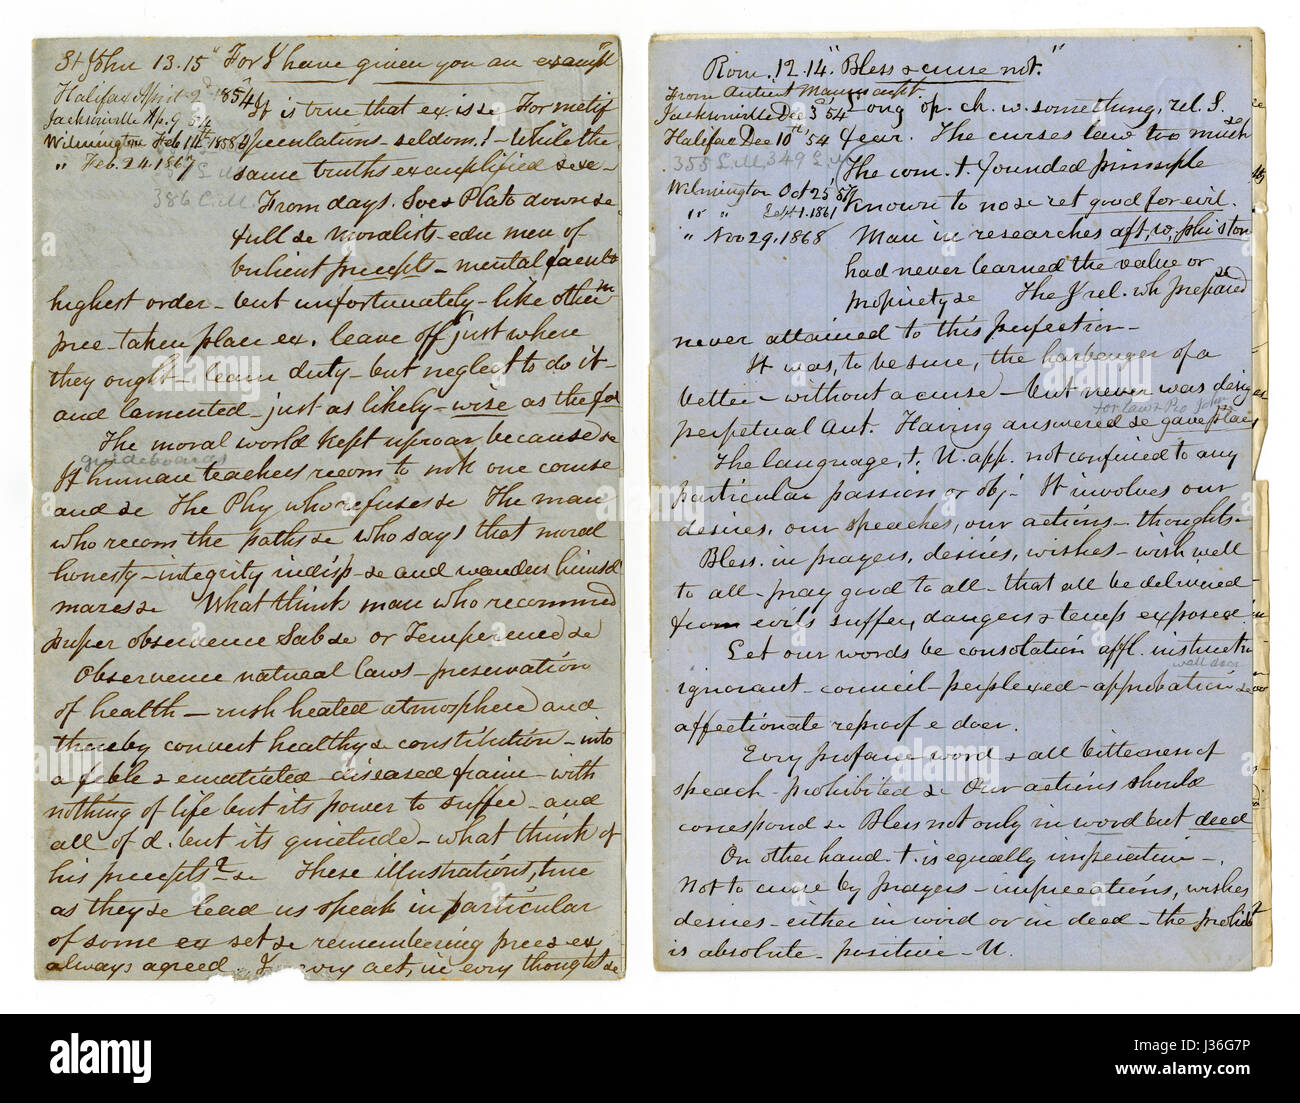 """Antique c1860 hand written sermon from a traveling preacher. The one on the left draws from John 13:15 """"For I have Stock Photo"""